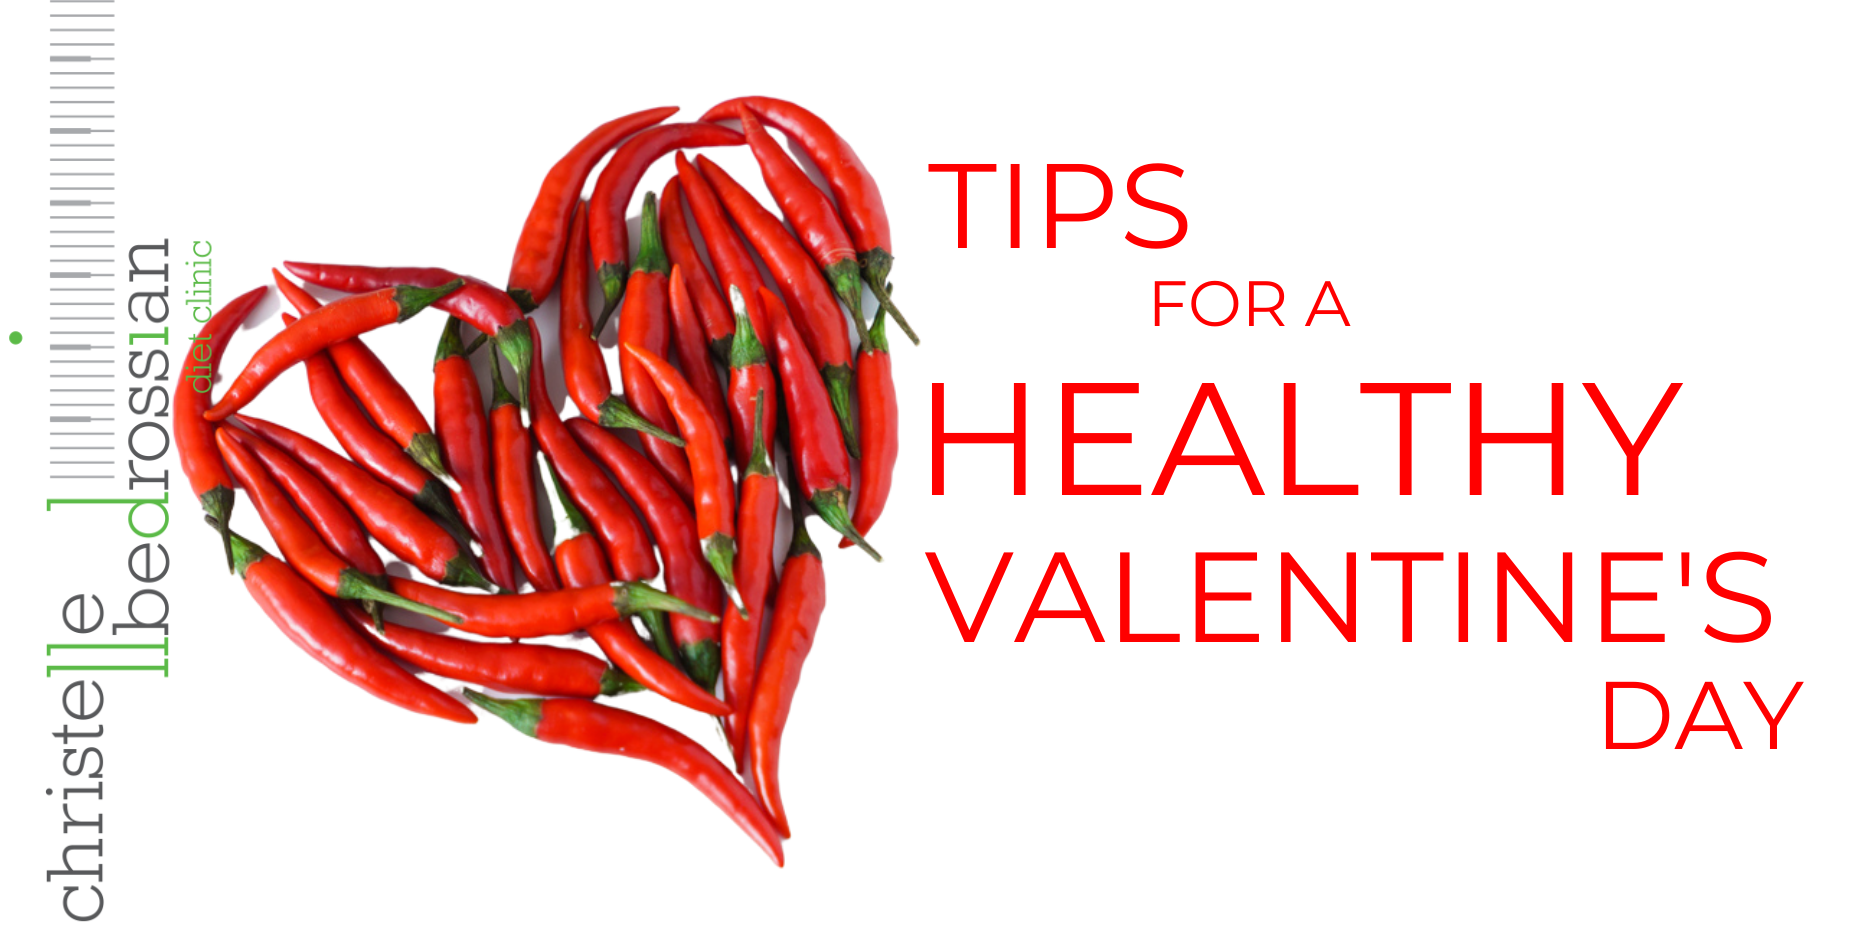 Tips for a healthy valentine's day